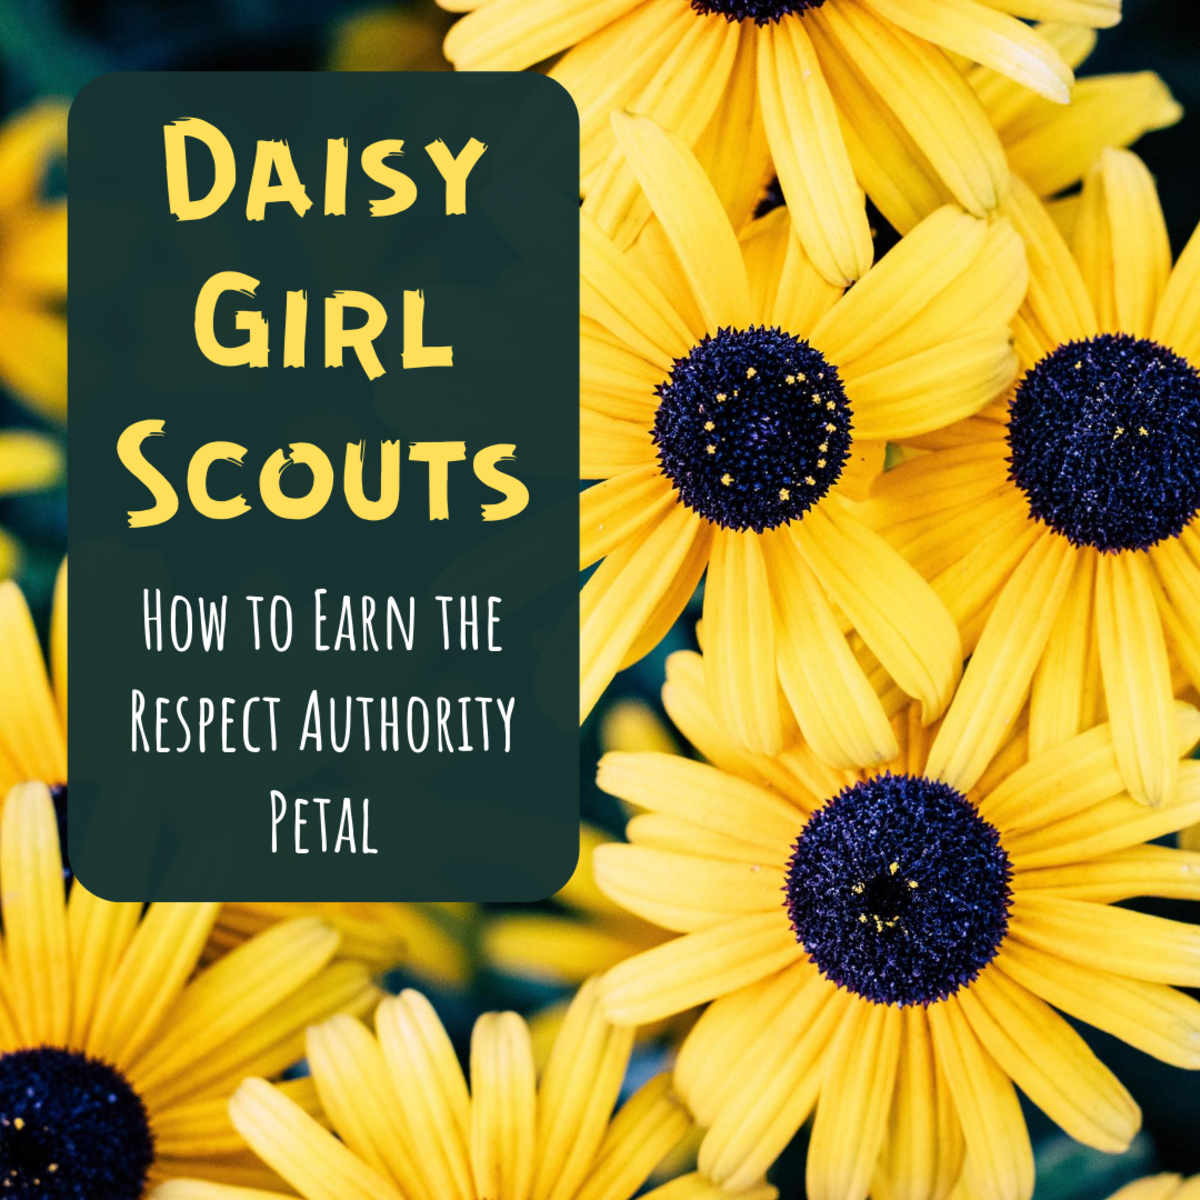 Learn more about Daisy petals, and get ideas for how your troop can earn the magenta petal for respecting authority.